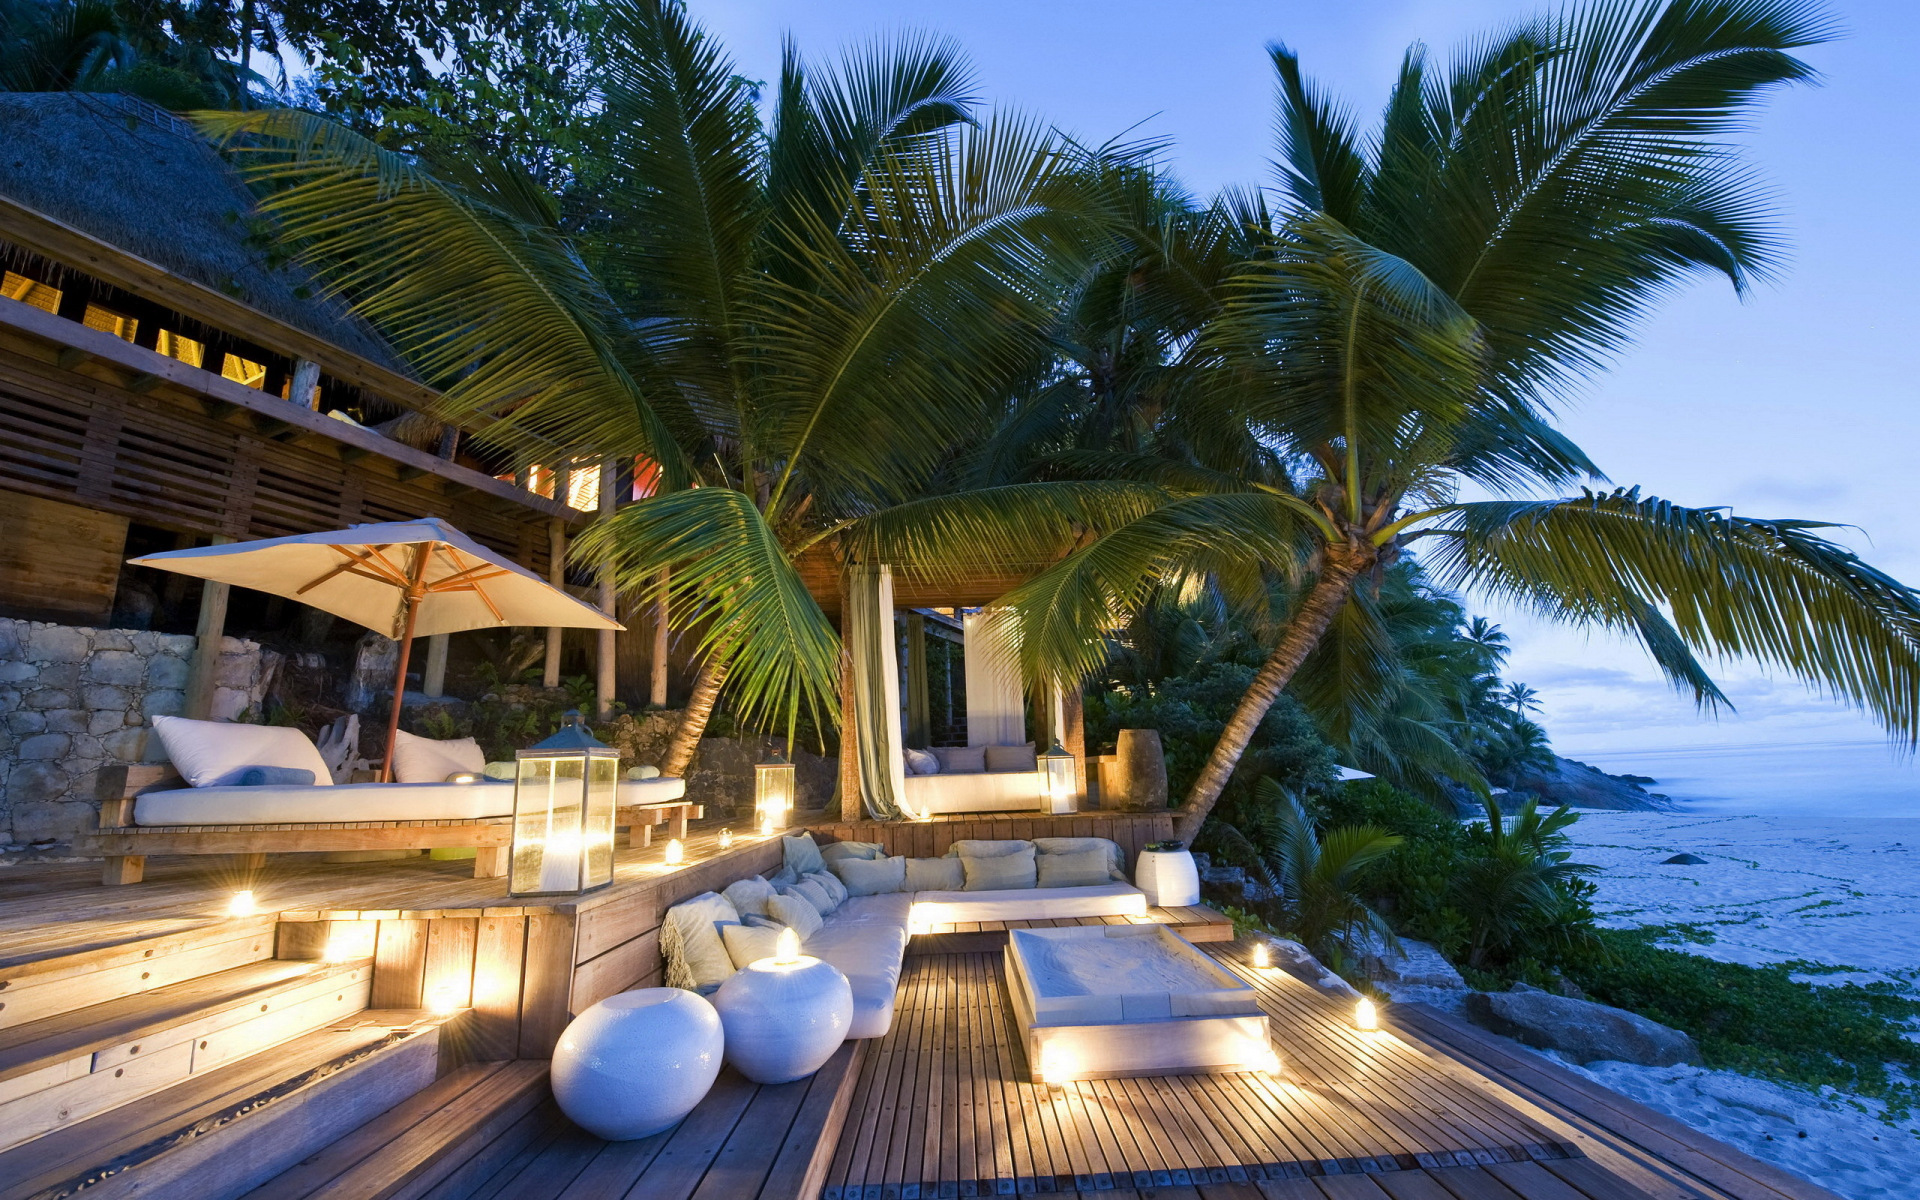 40 Beach House Ideas For You To Get Inspire